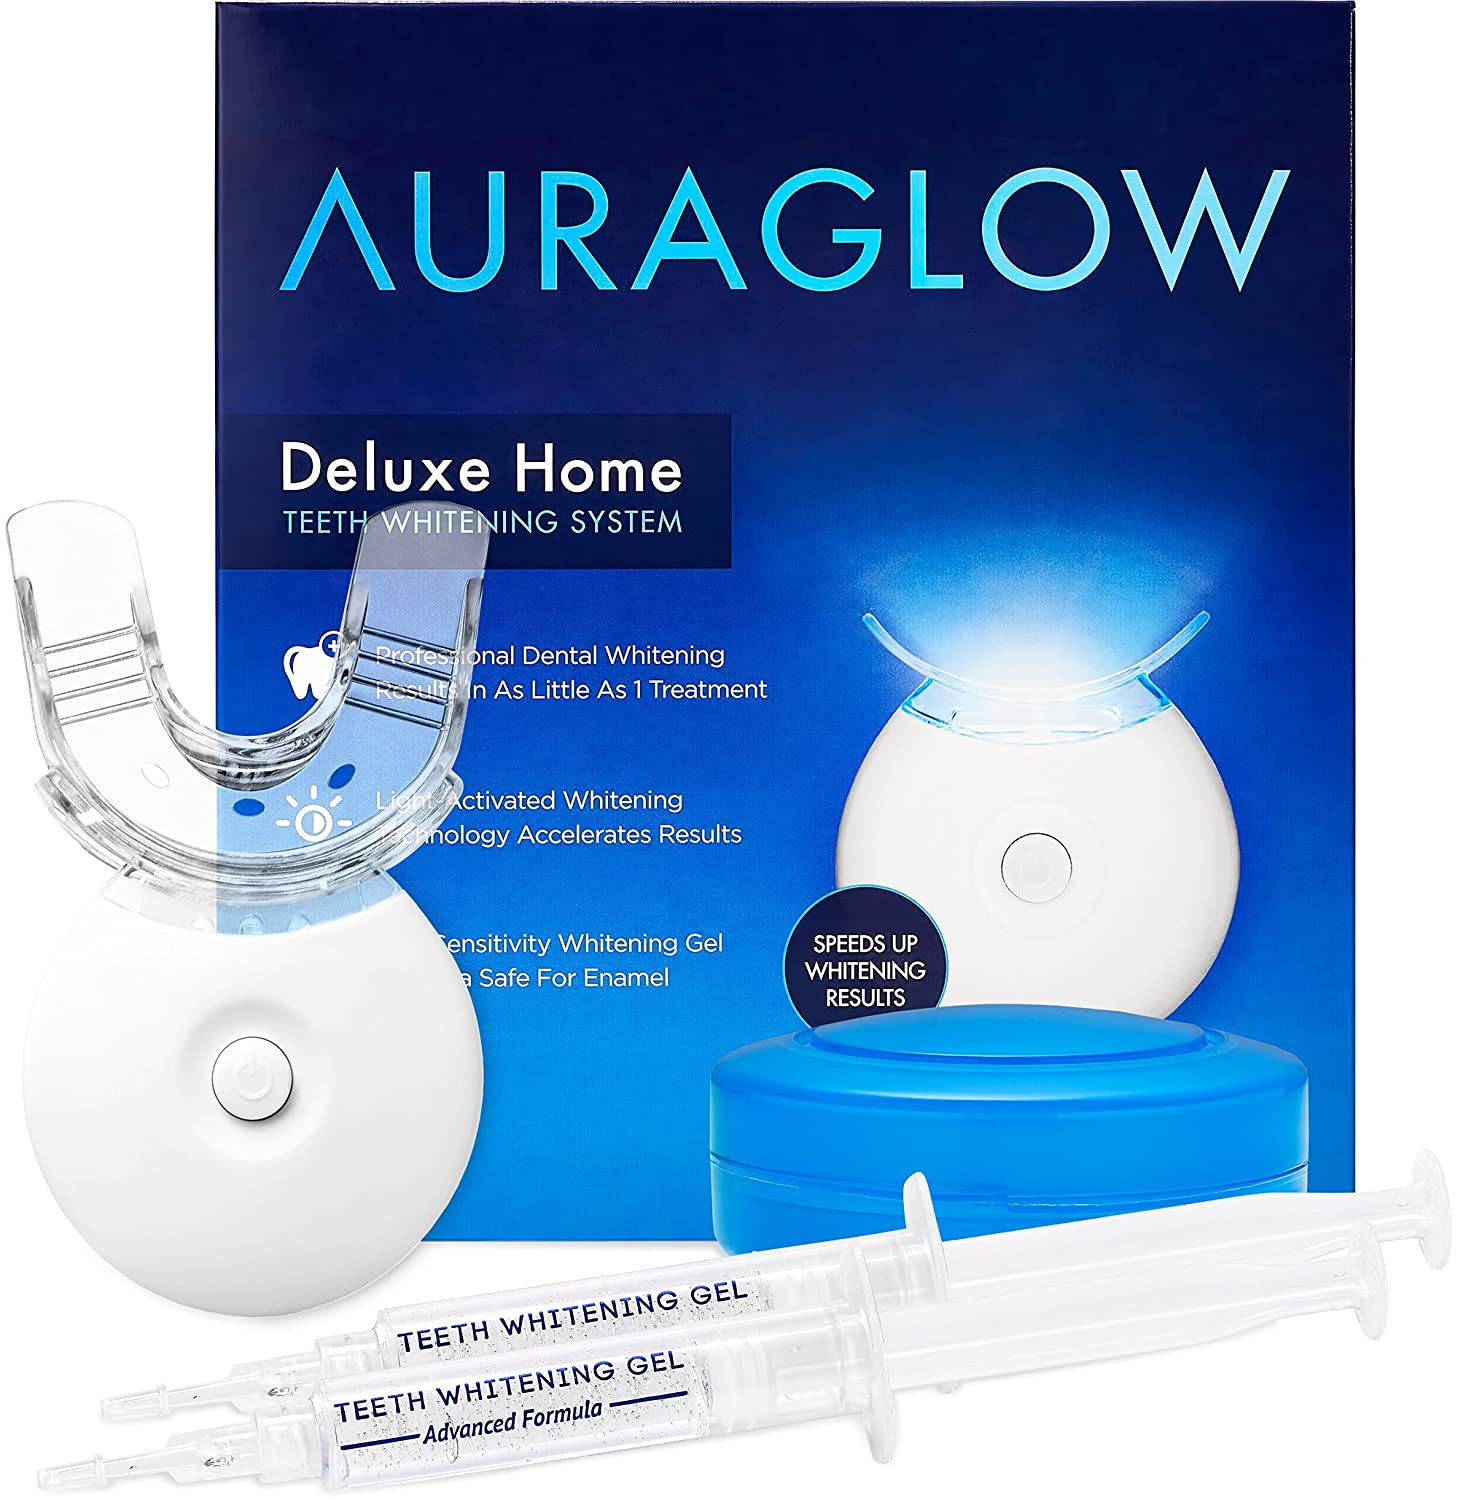 Aura Glow Teeth Whitening Kit, Led Light, 35 Percents Carbamide Peroxide, (2) 5ml Gel Syringes, Tray And Case by Aura Glow